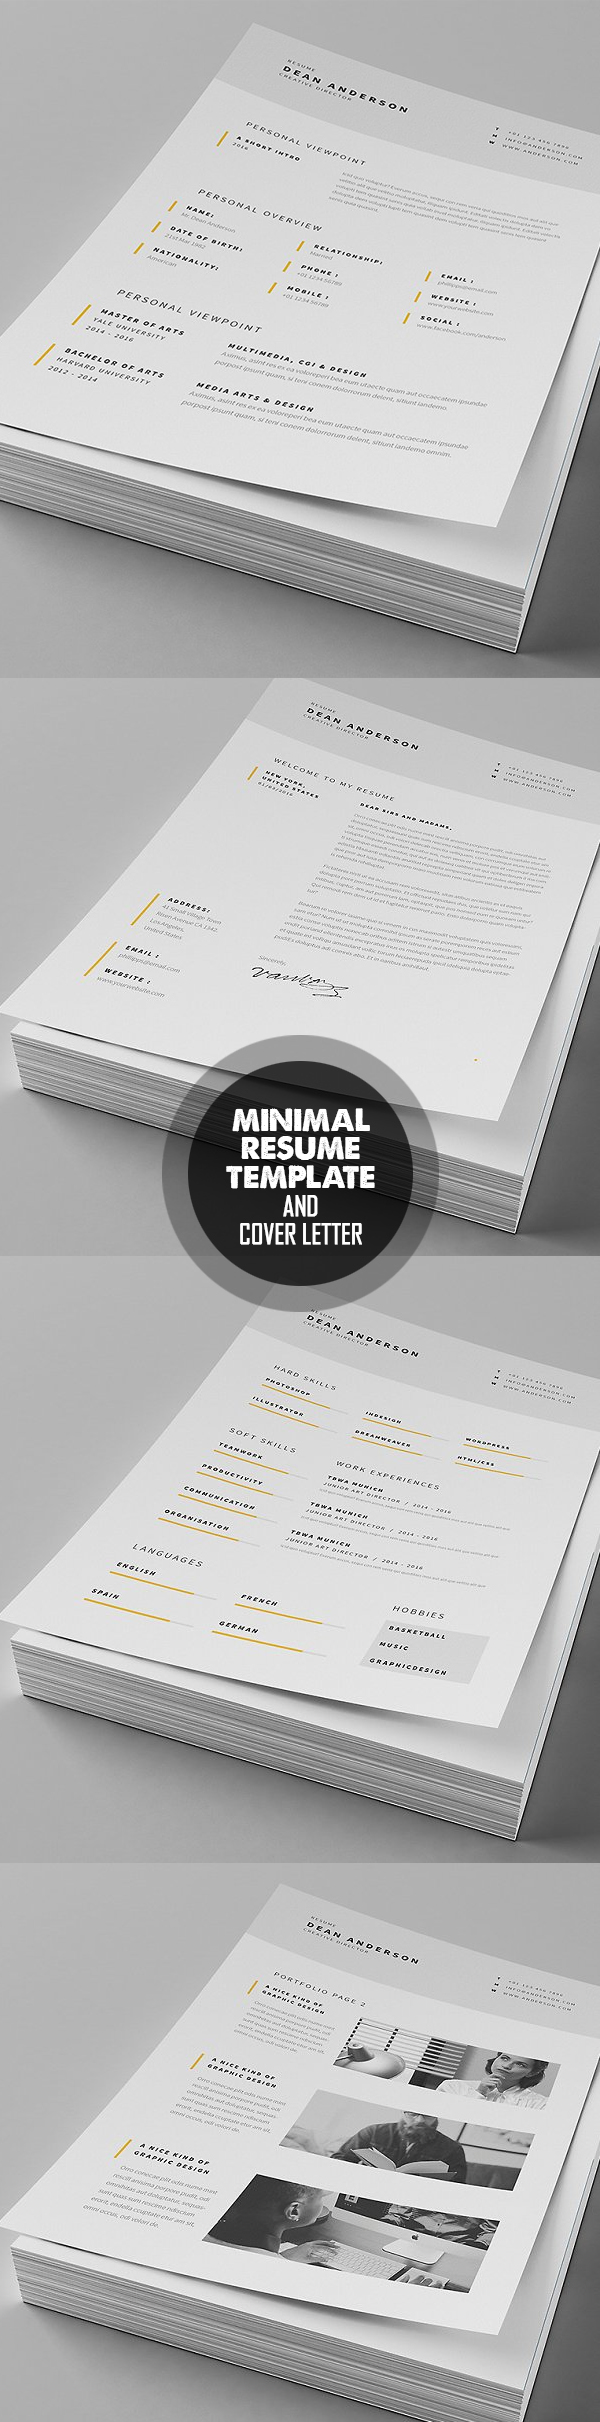 Minimal Resume   Cover Letter Template